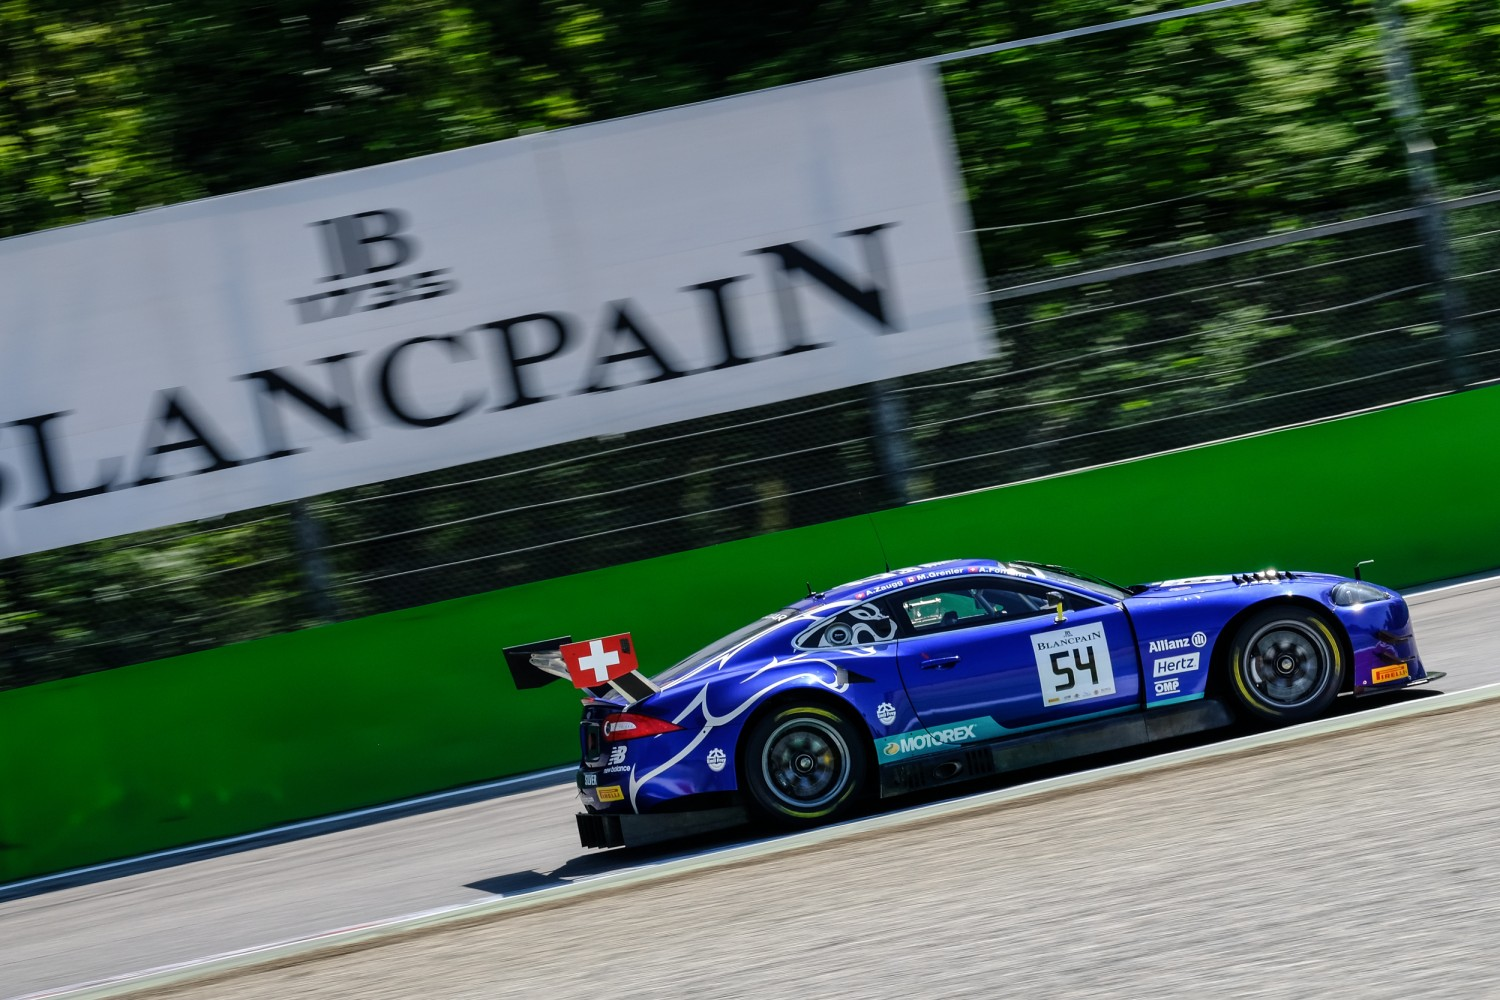 Emil Frey Jaguar Racing to race at Total 24 hours of Spa